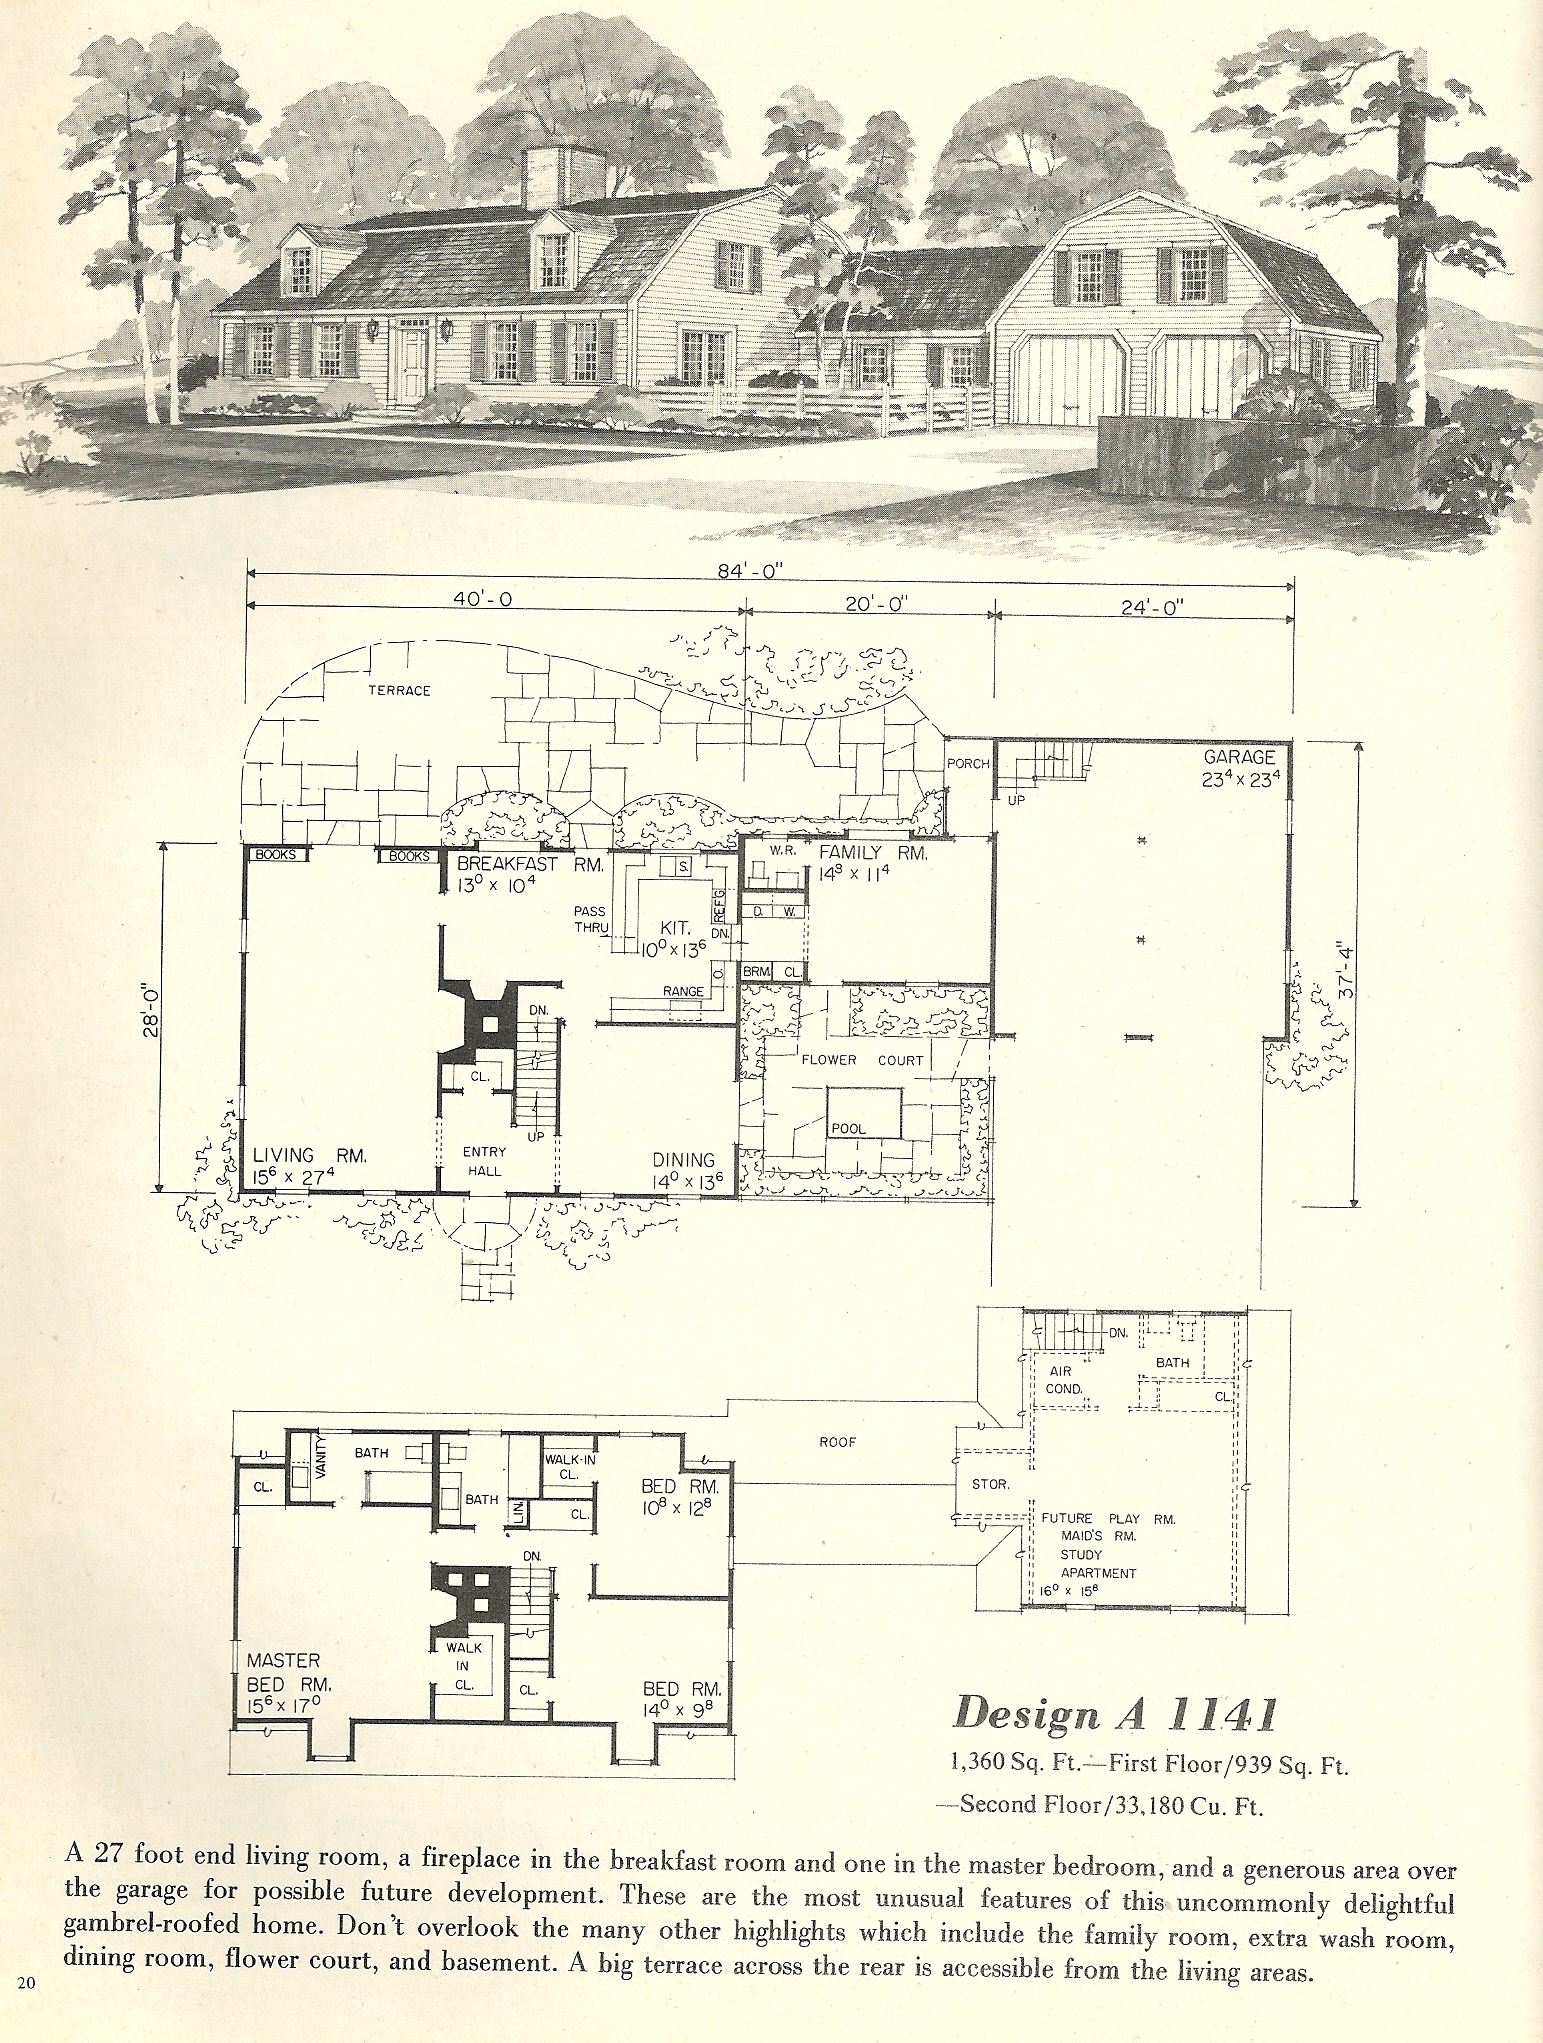 Vintage house plans 1970s new england gambrel roof homes for Gambrel roof house plans